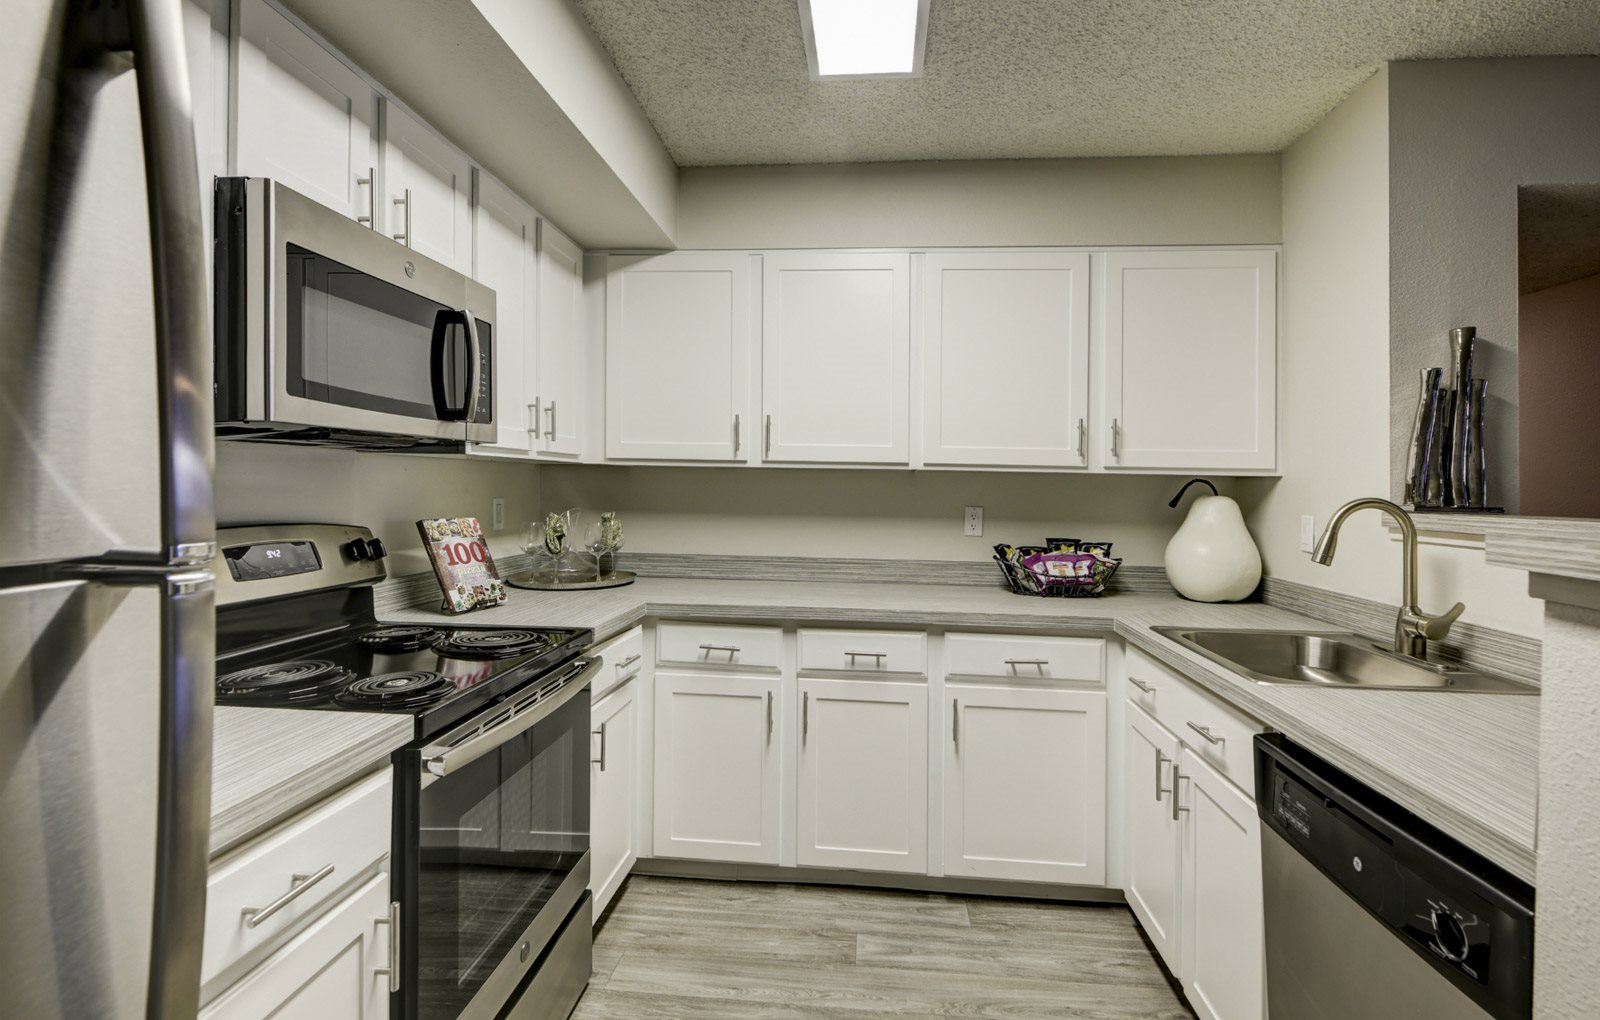 large kitchen space in apartment unit